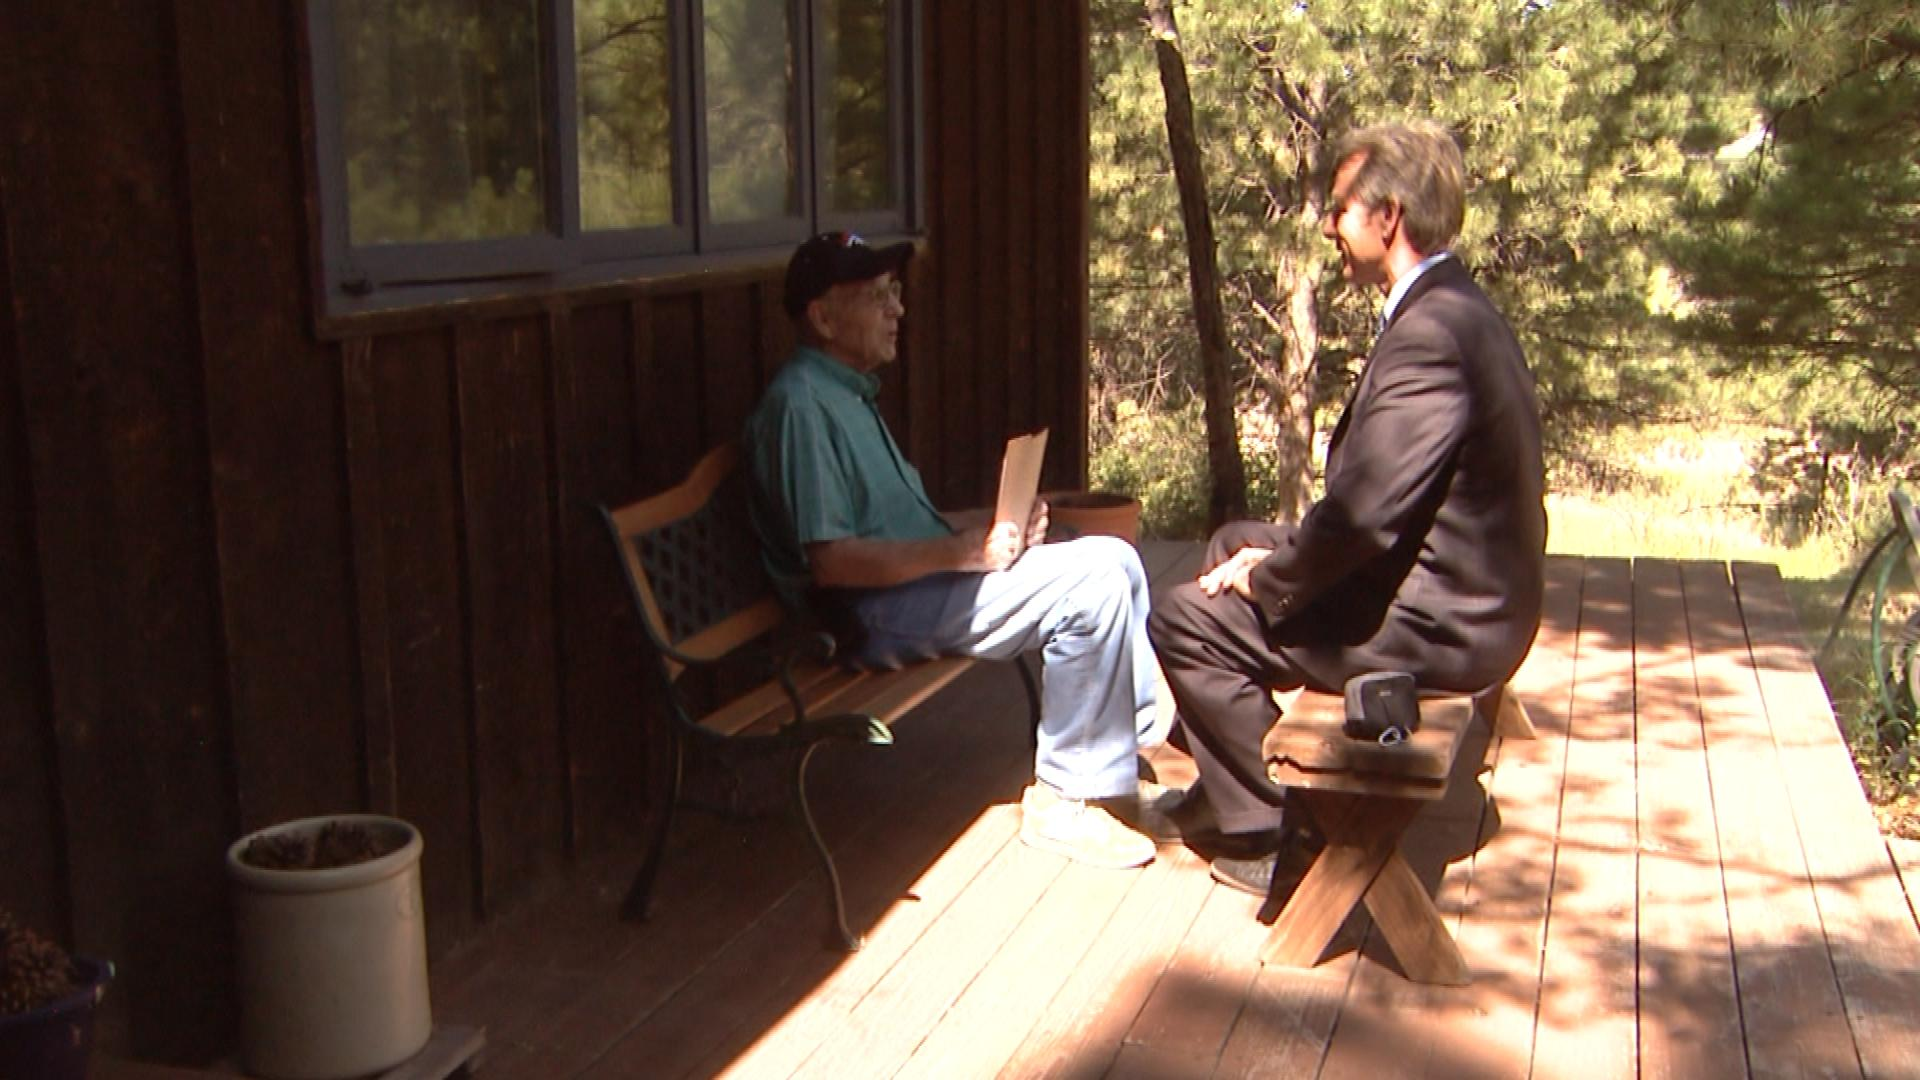 Richard Kuhn is interviewed by CBS4's Tom Mustin (credit: CBS)